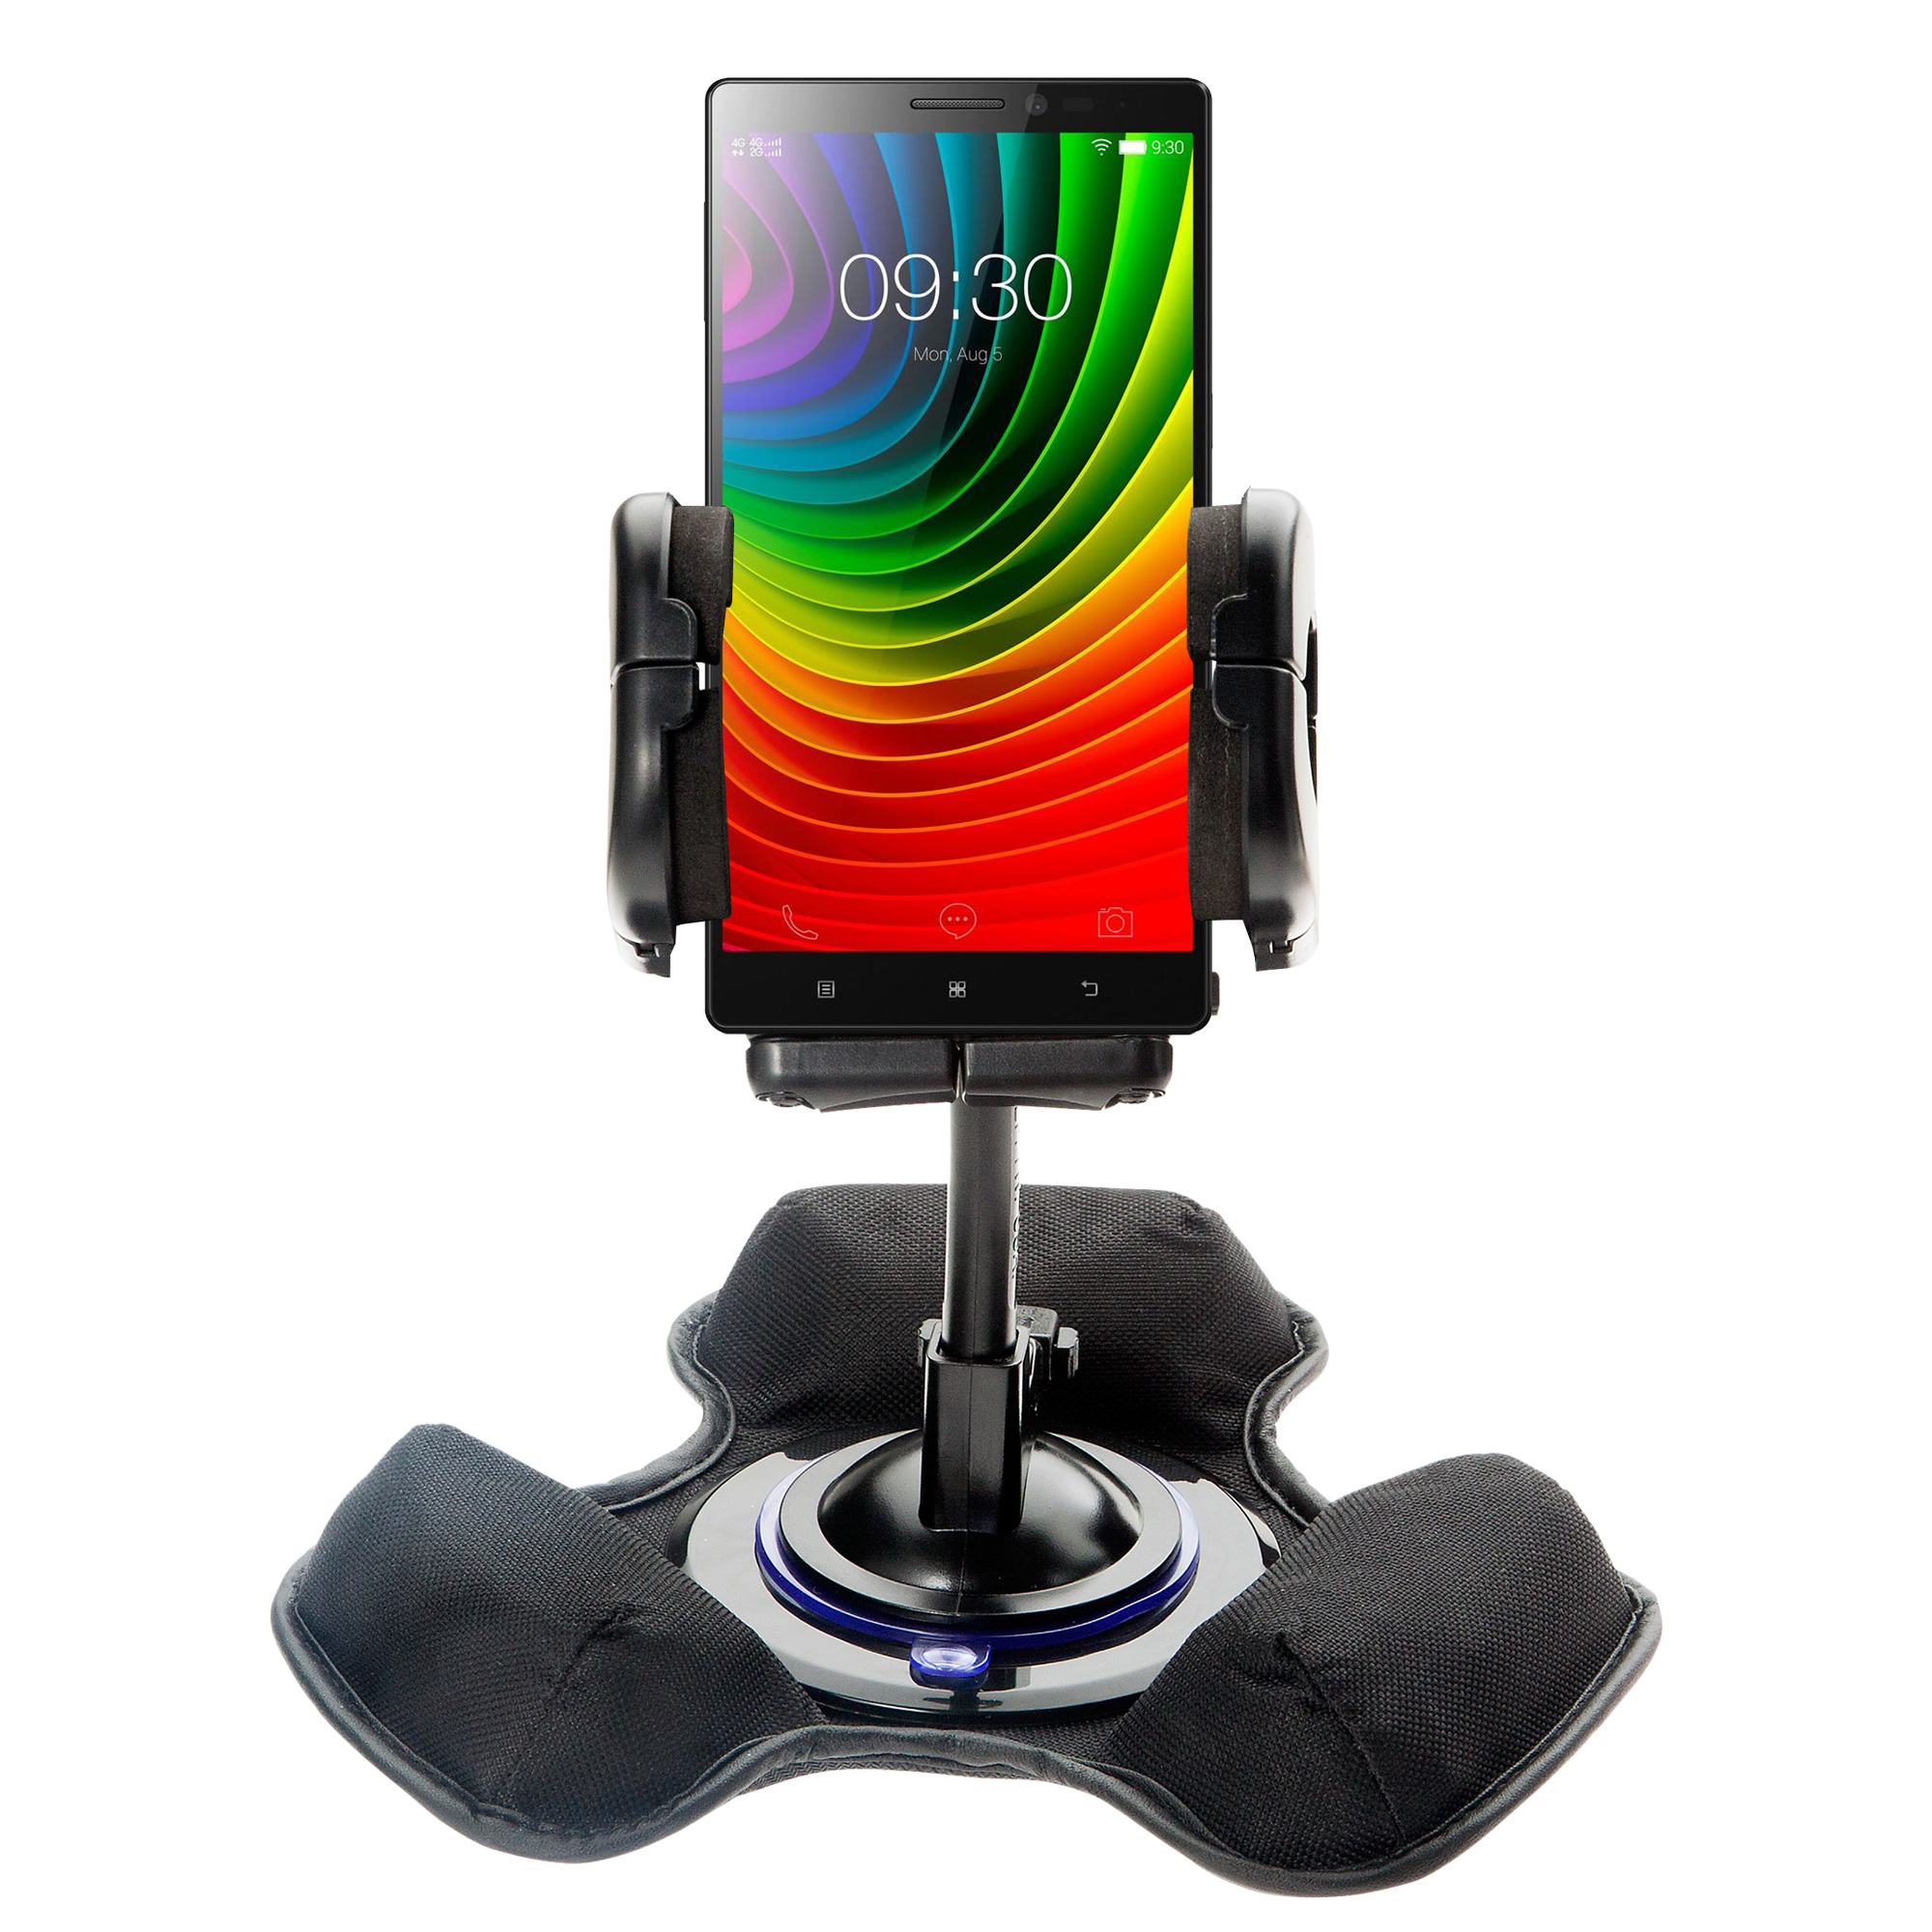 Dash and Windshield Holder compatible with the Lenovo VIBE Z2